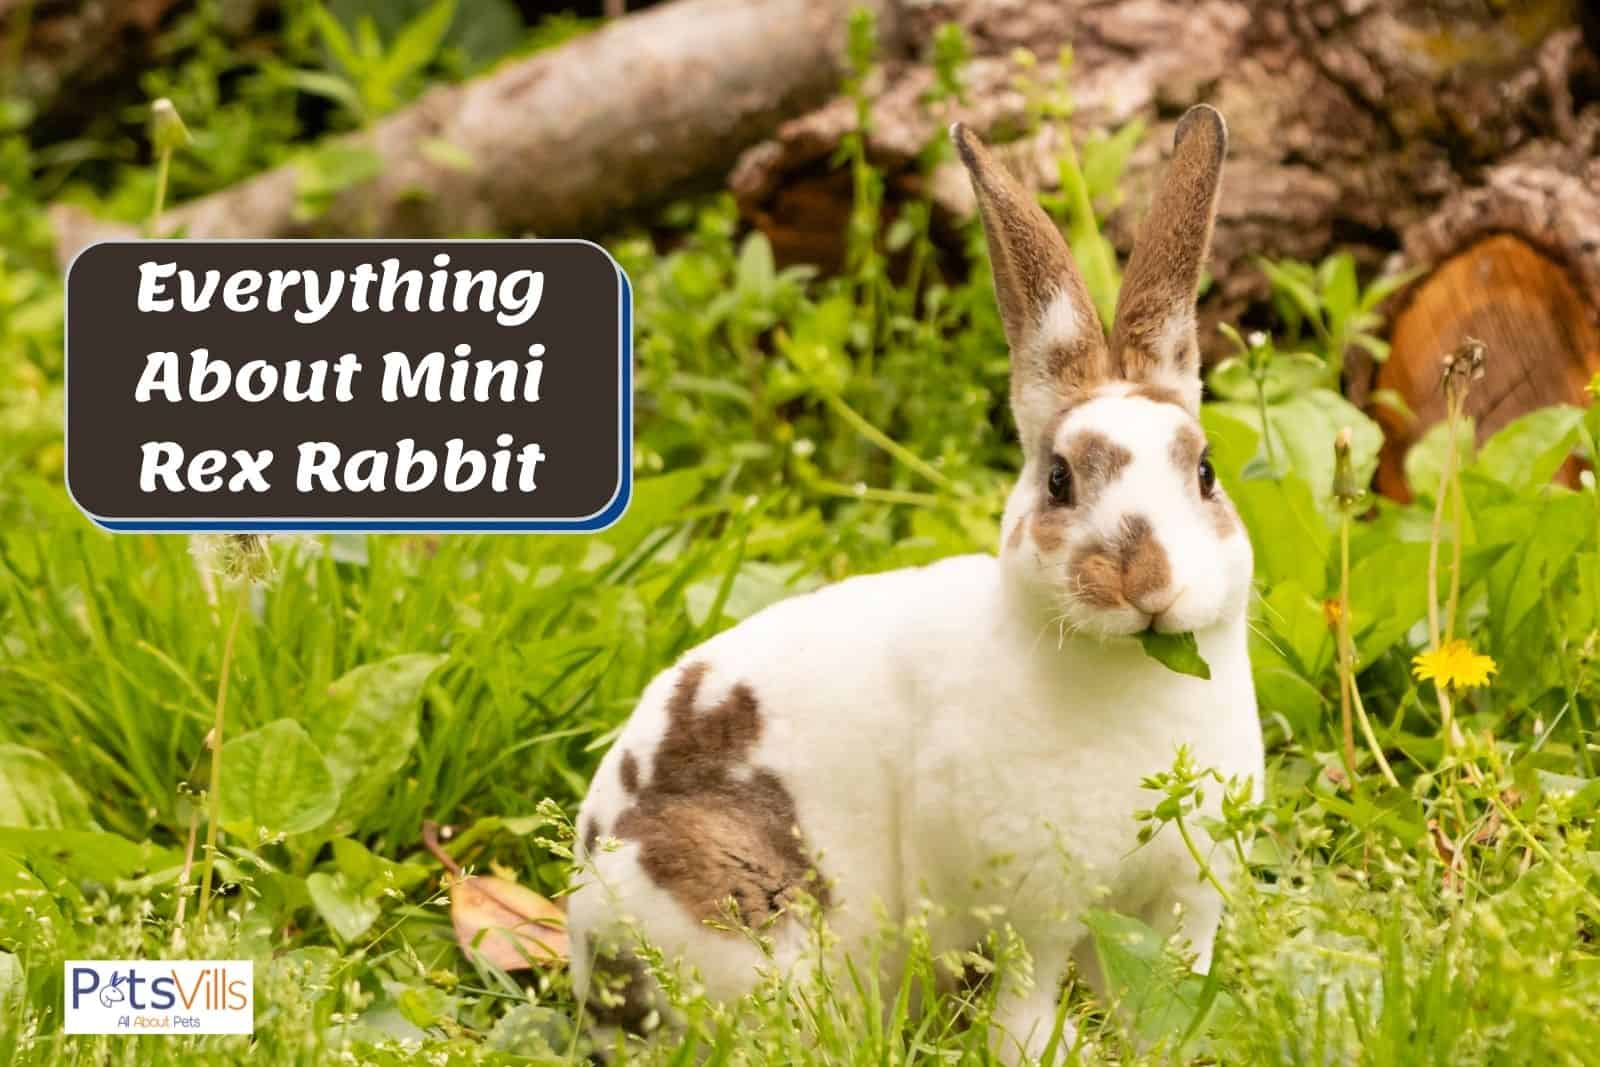 a very adorable Mini Rex rabbit eating leaves